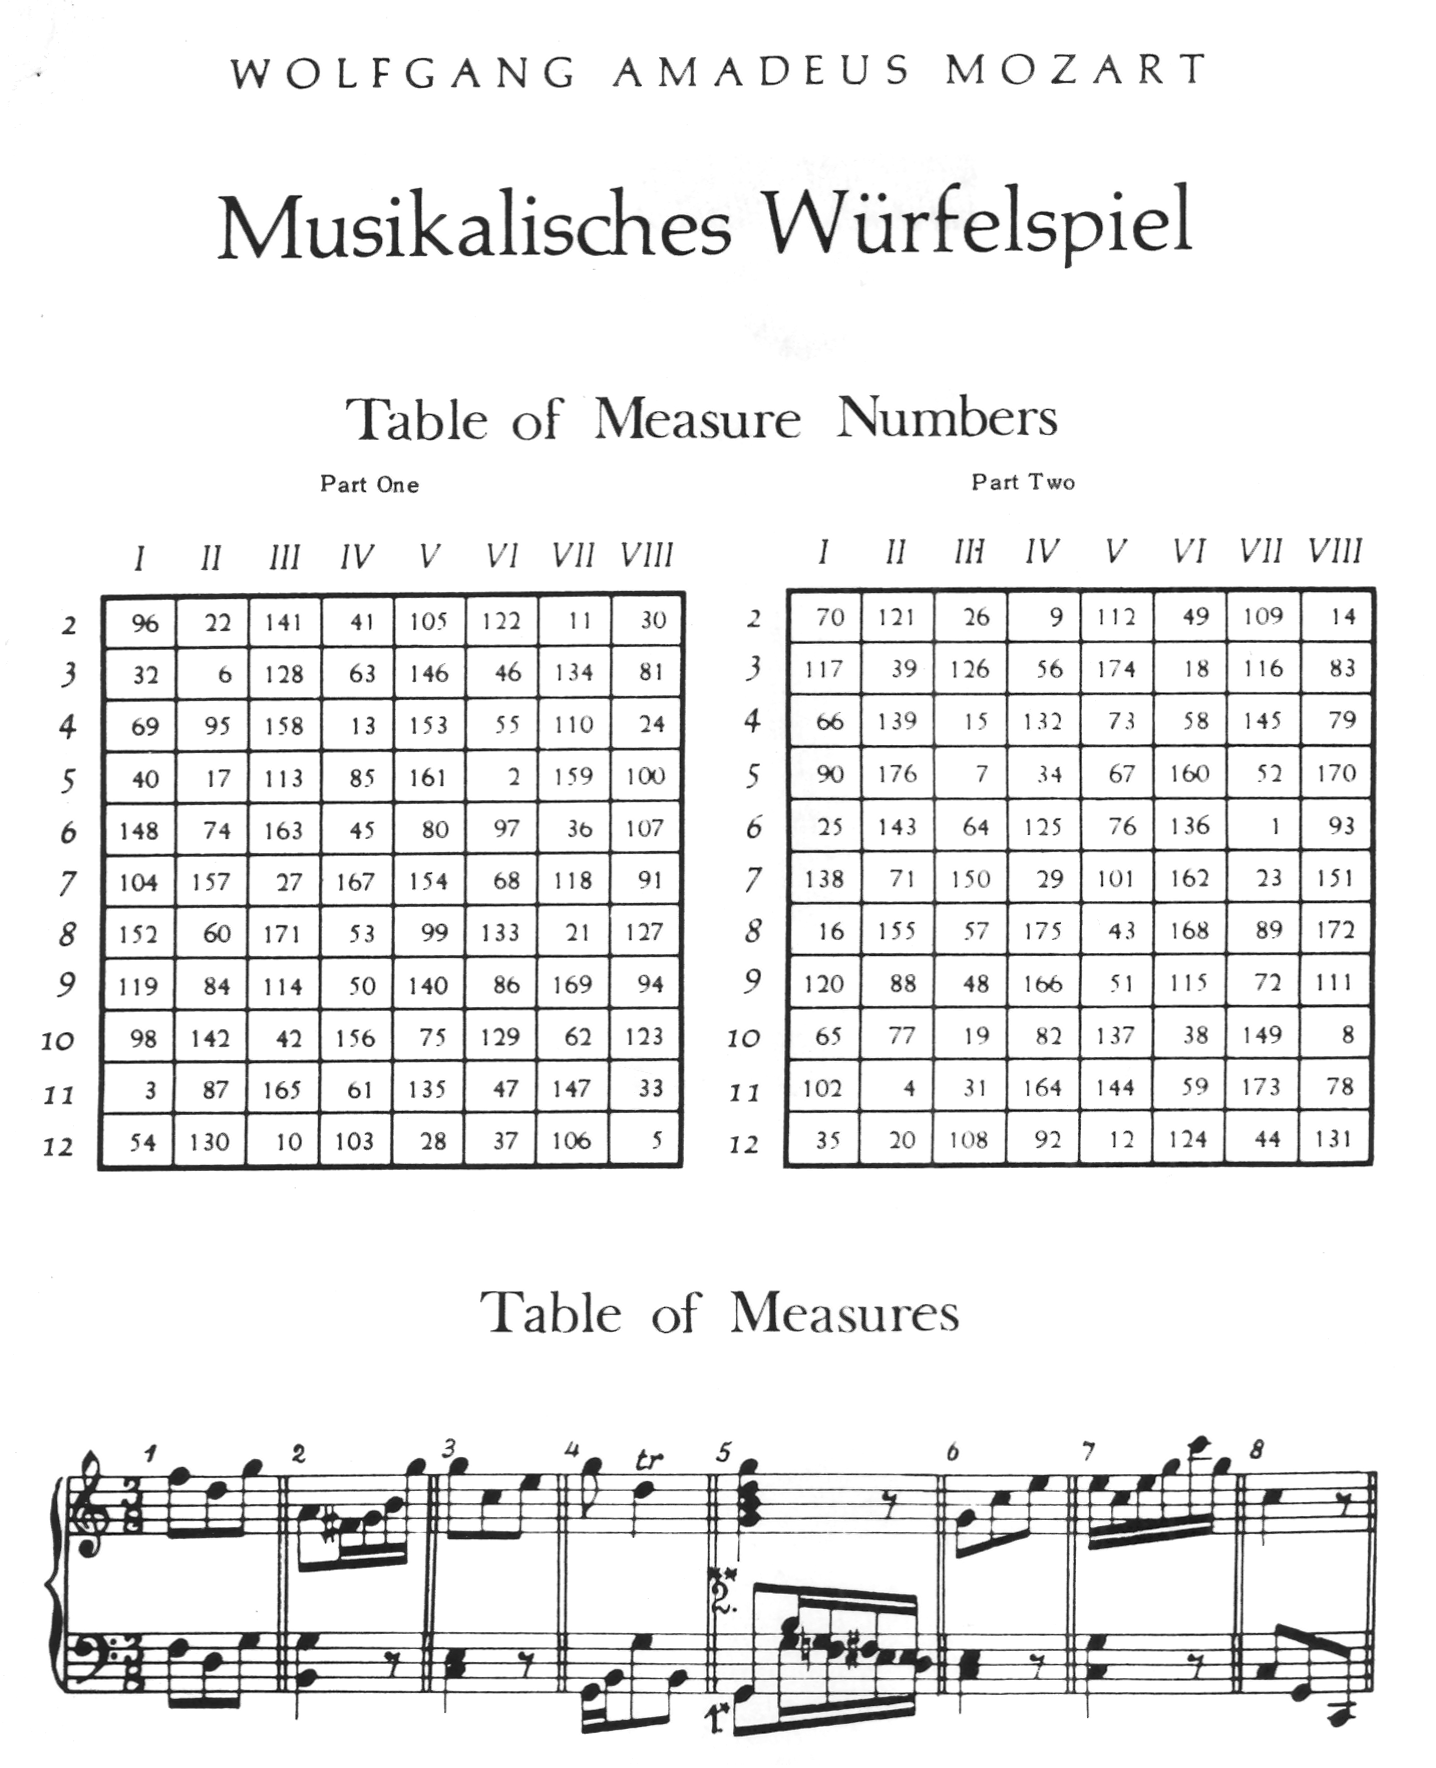 Mozart's Dice Game